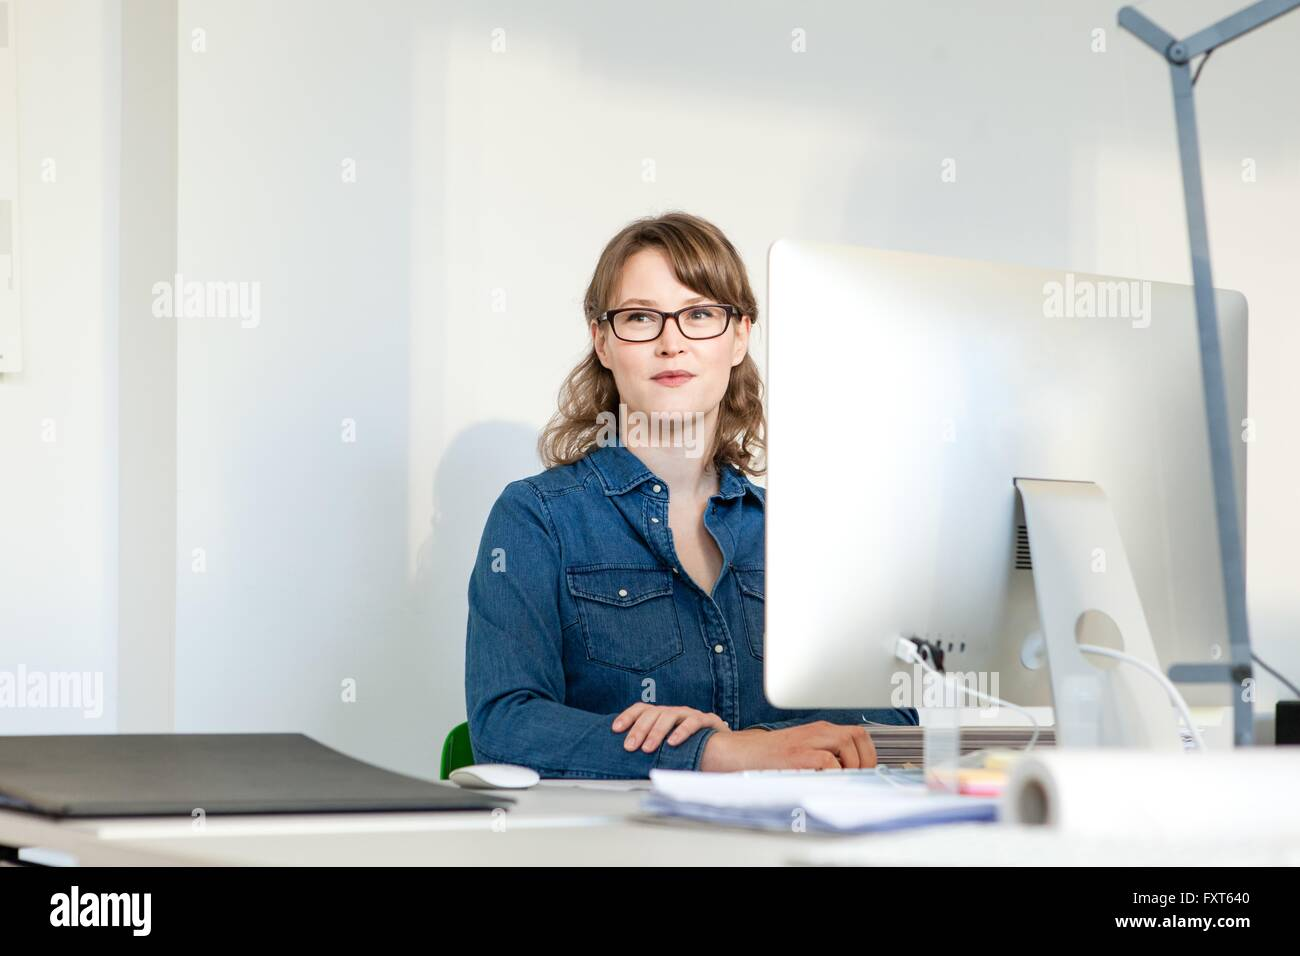 Young woman wearing eyeglasses sitting at desk using computer looking away smiling - Stock Image